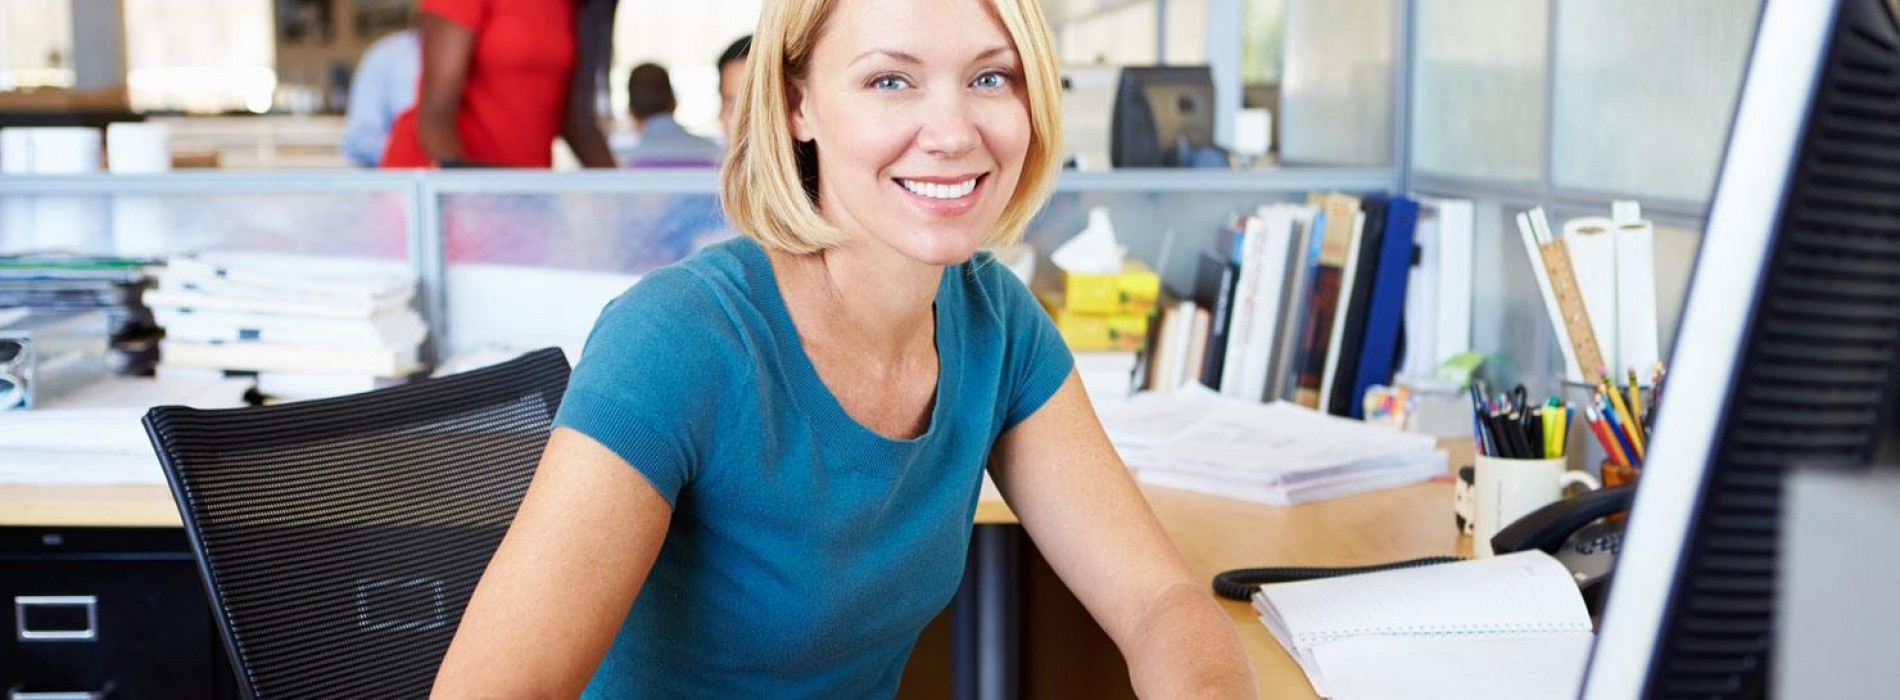 More Women are Becoming Business Owners